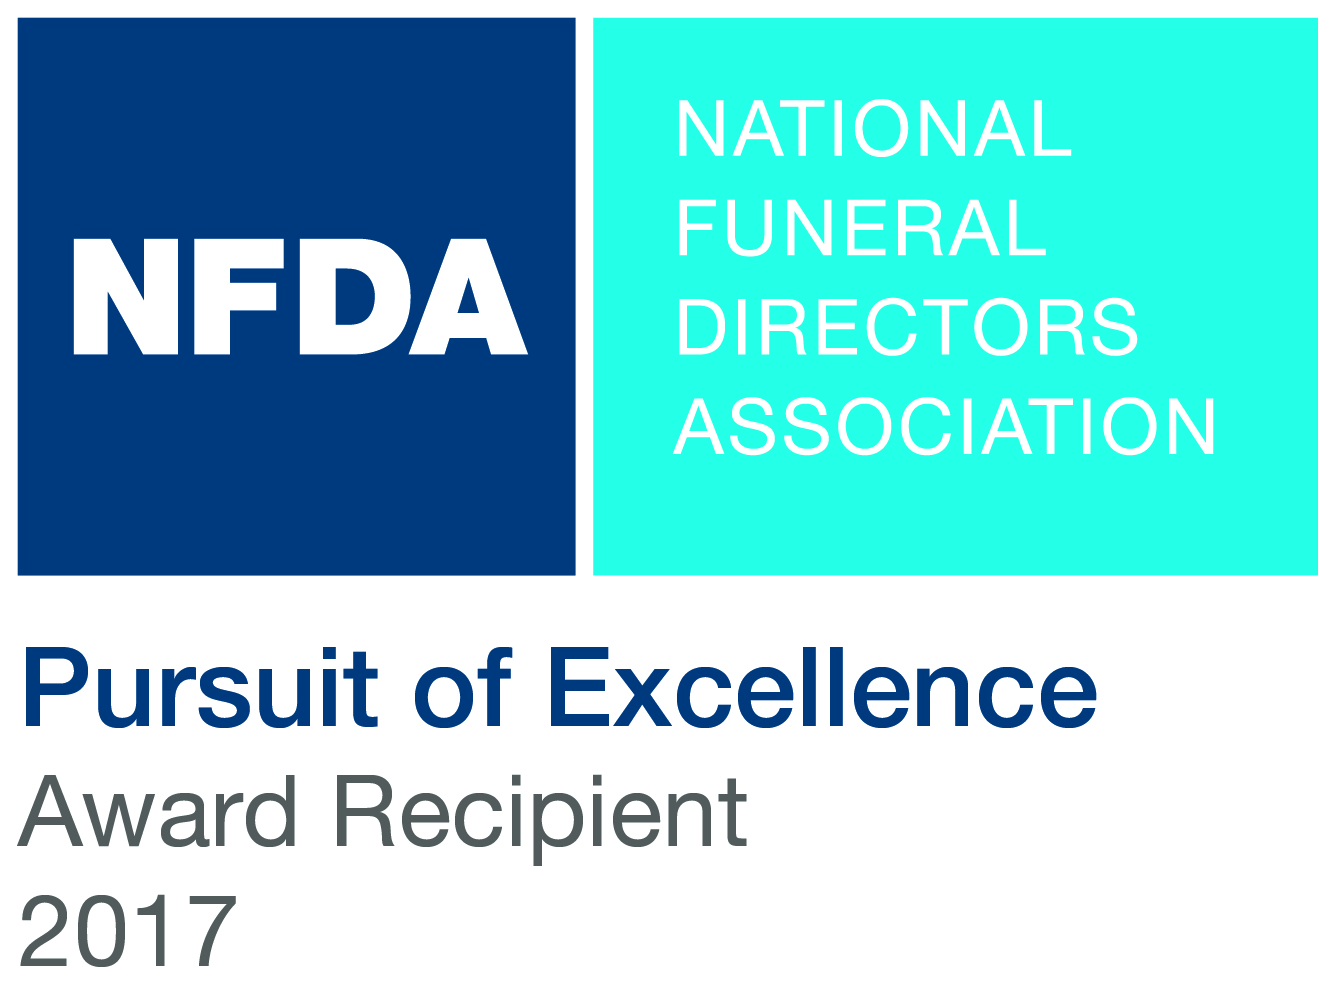 NFDA - Pursuit of Excellence Award Recipient 2017